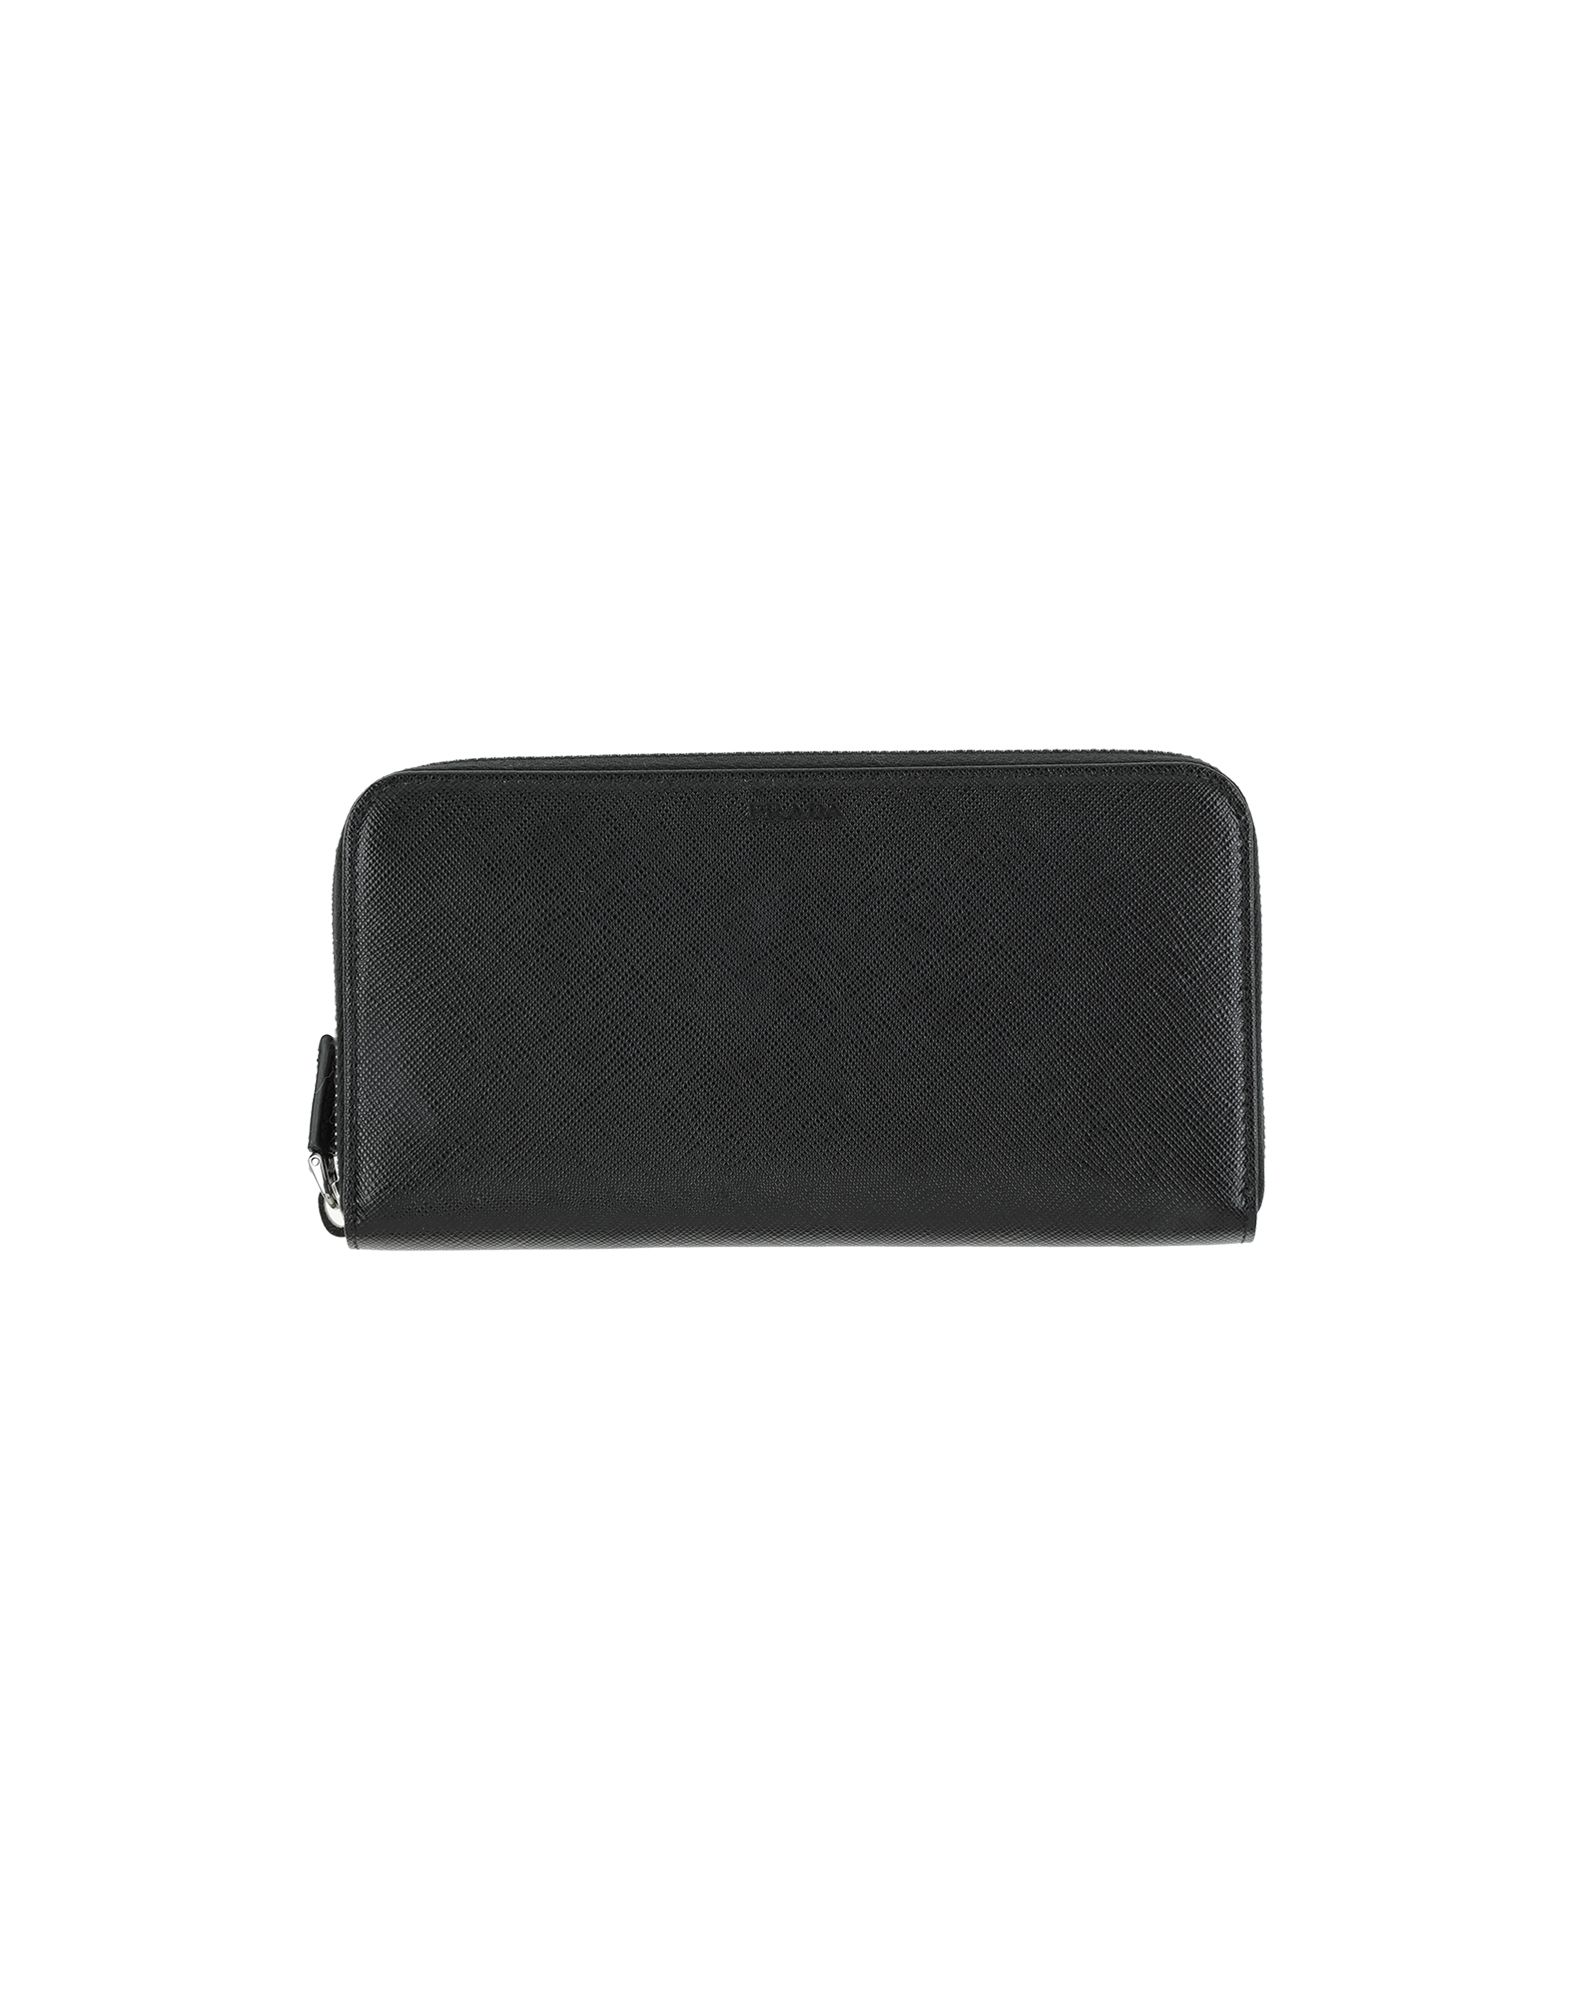 1509eb8c0822 Prada Wallet - Men Prada Wallets online on YOOX Belgium - 46607729KT